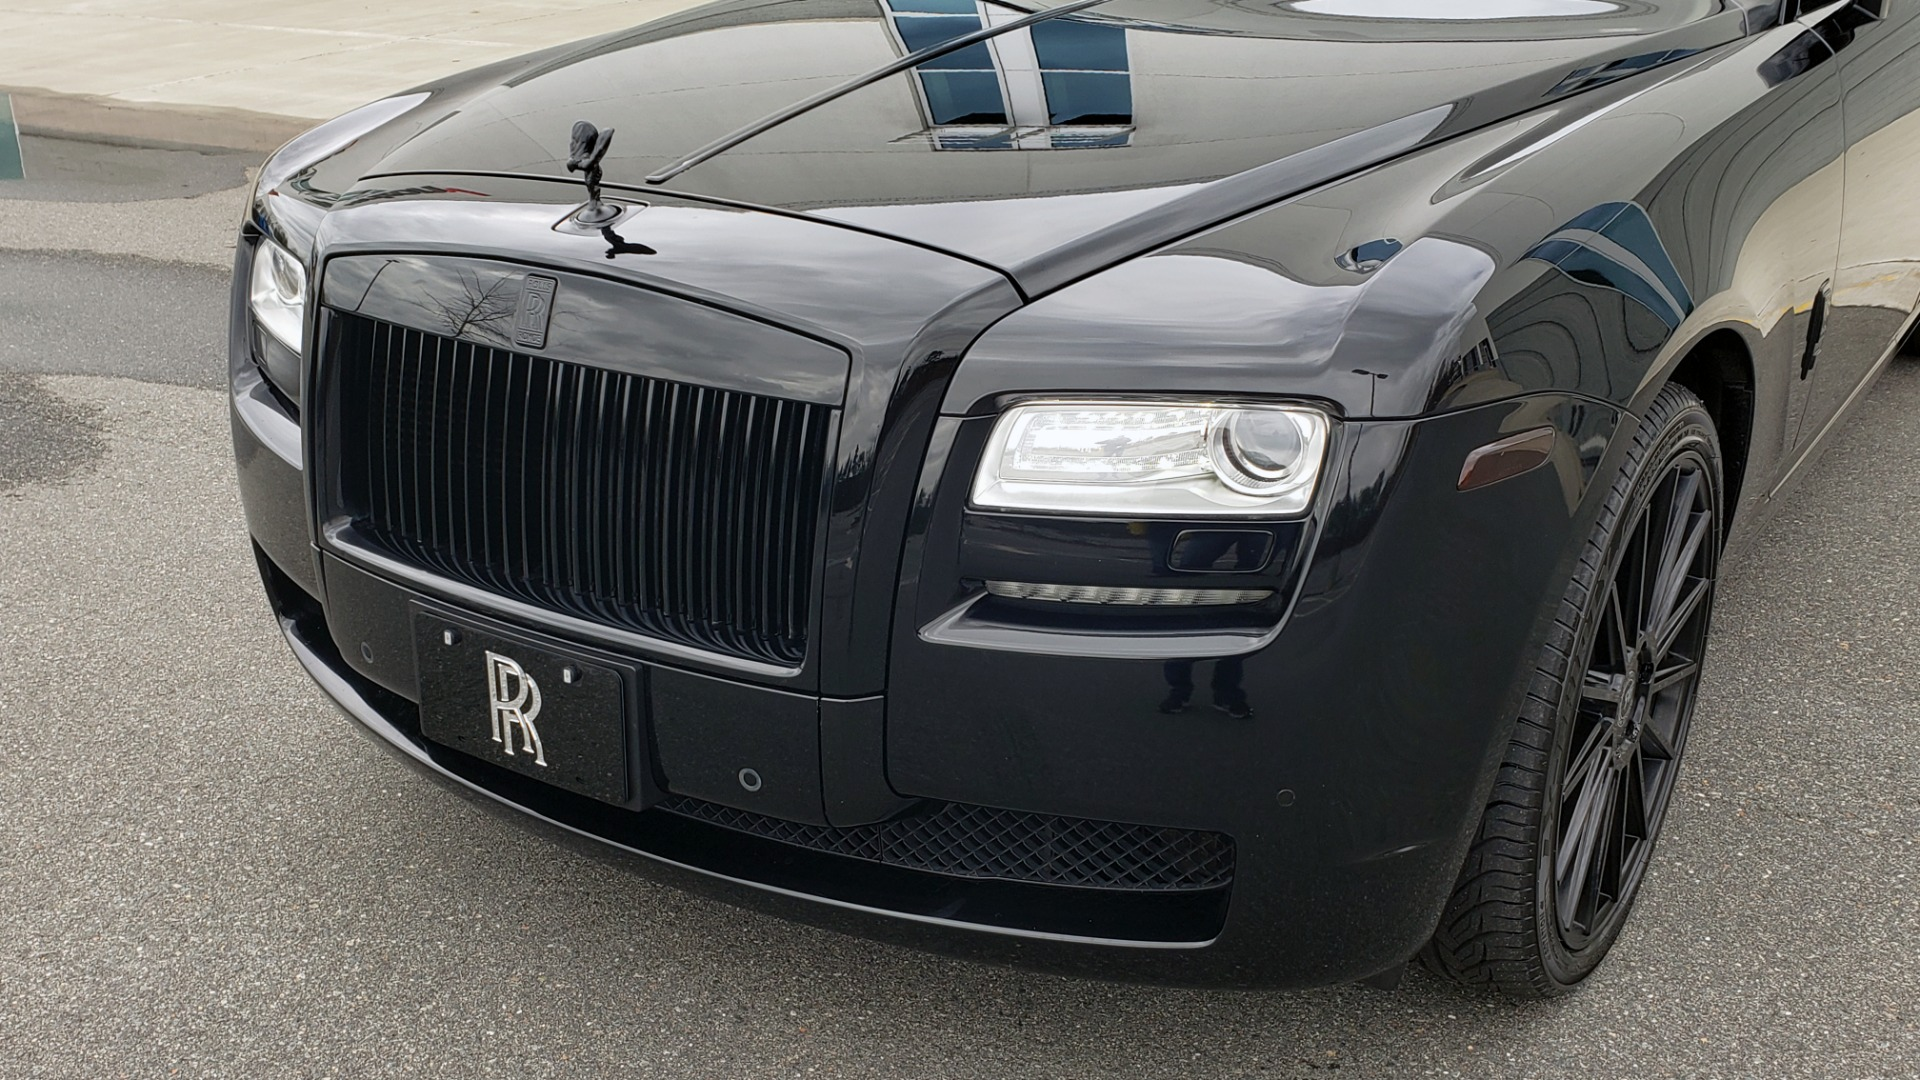 Used 2010 Rolls-Royce GHOST 6.6L TURBO V12 (563HP) / NAV / SUNROOF / SUICIDE DOORS for sale $89,000 at Formula Imports in Charlotte NC 28227 50